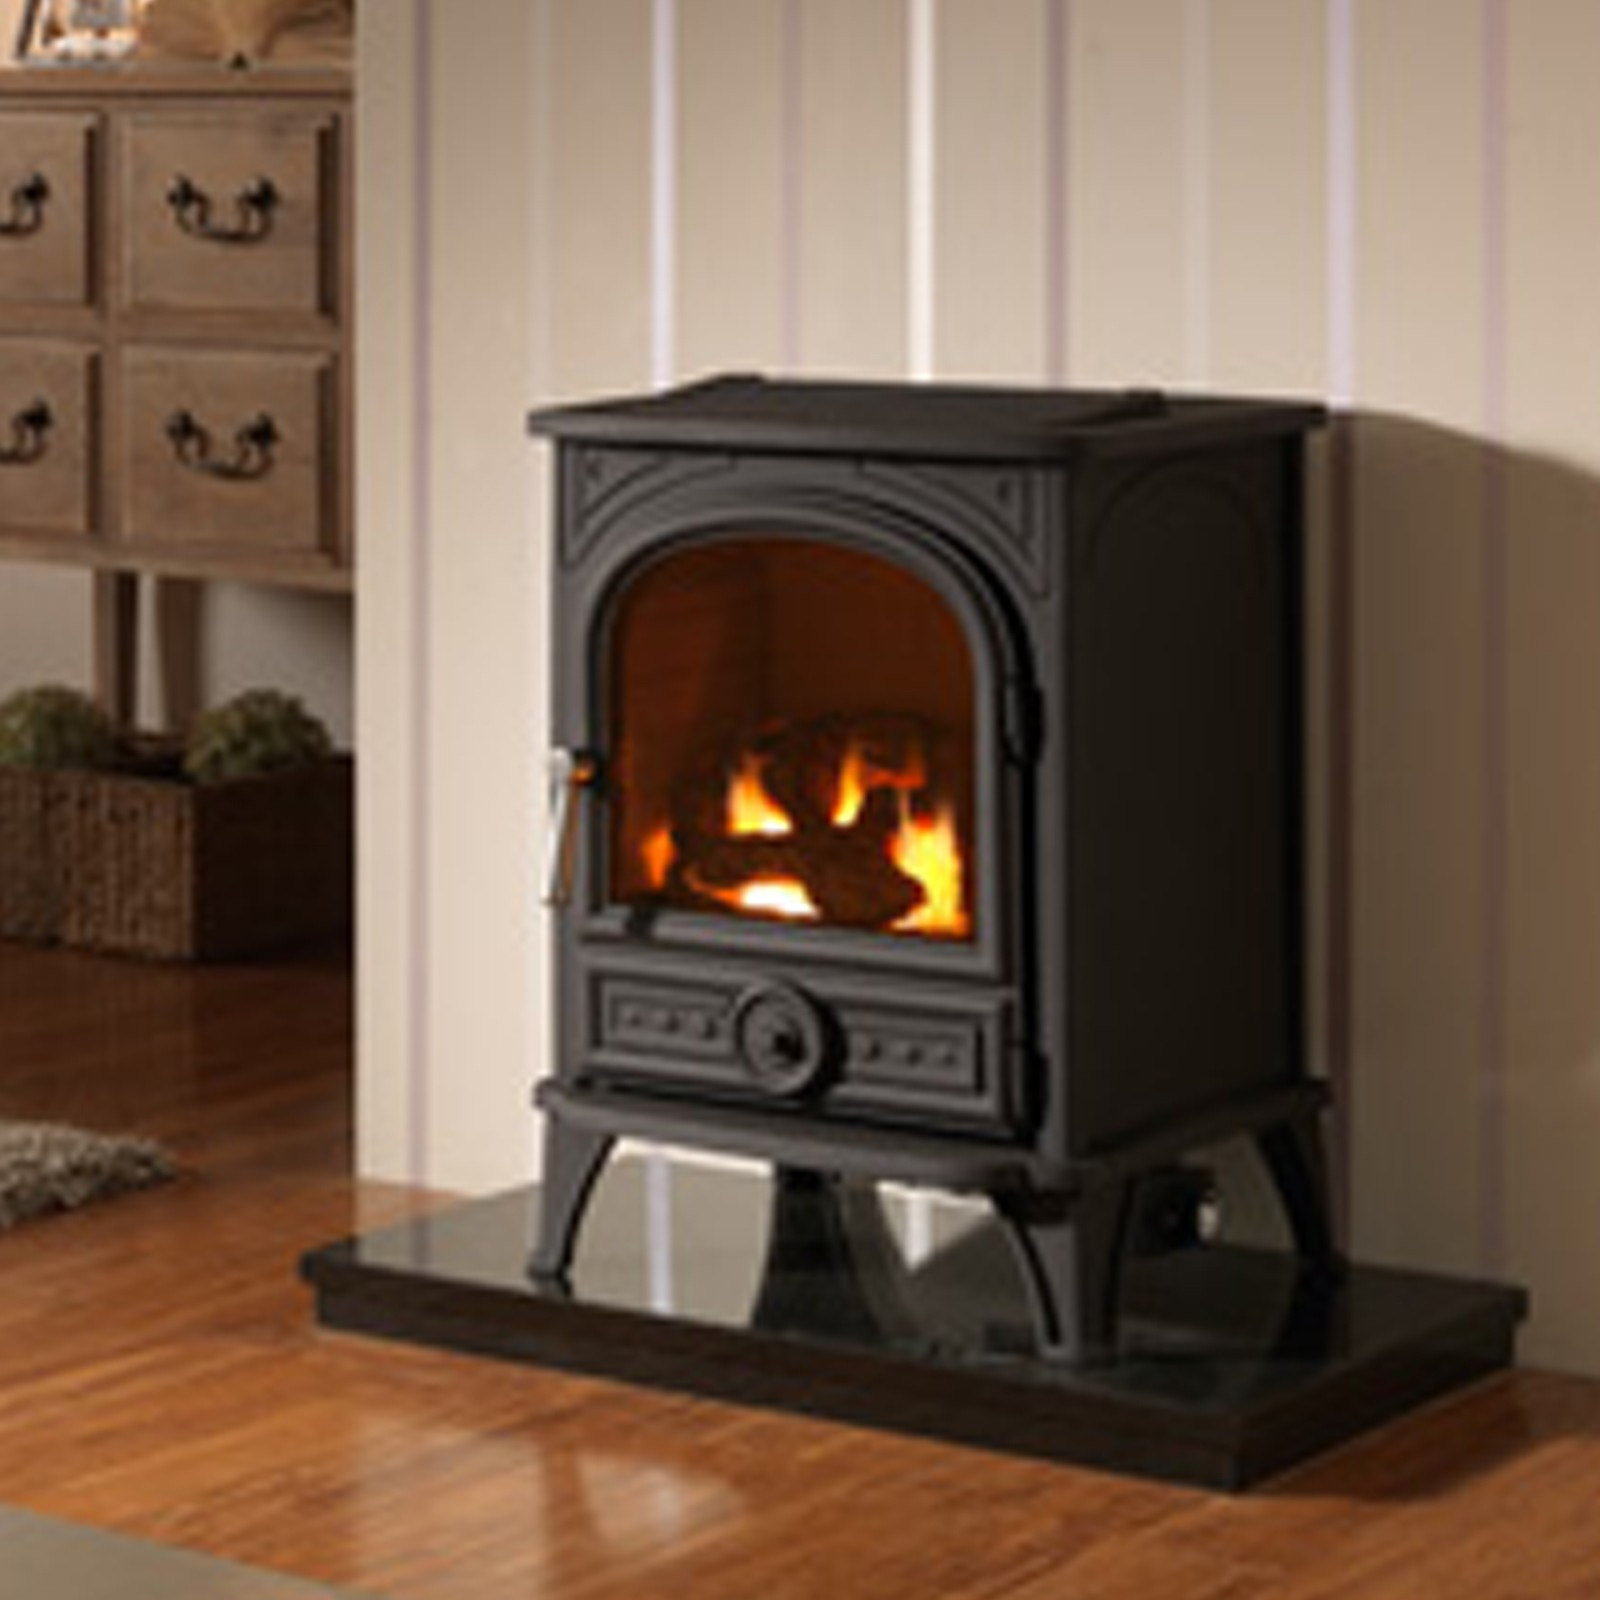 small ideas popular year stove you pin gas this know fireplace tiles need to fireplacegas most